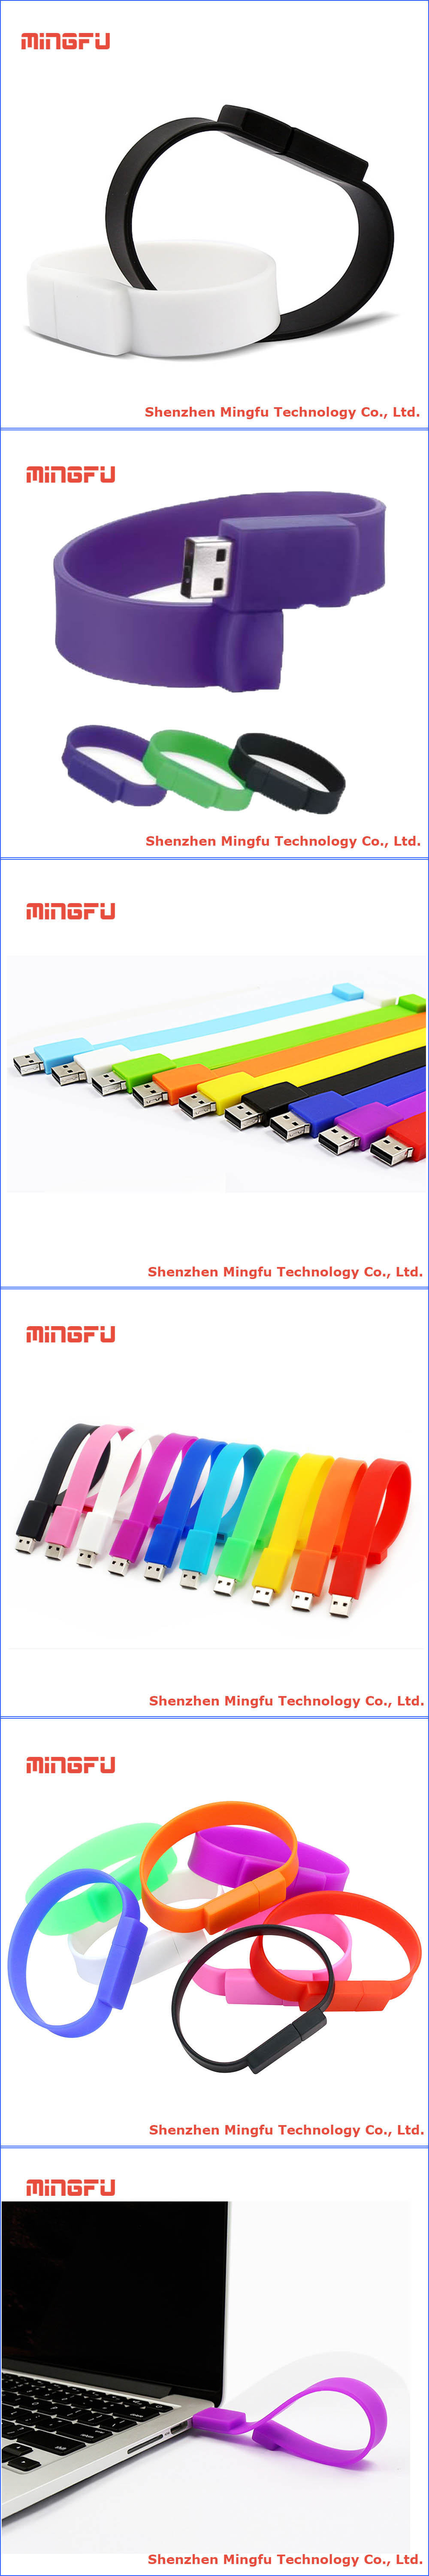 band usb flash drive.jpg